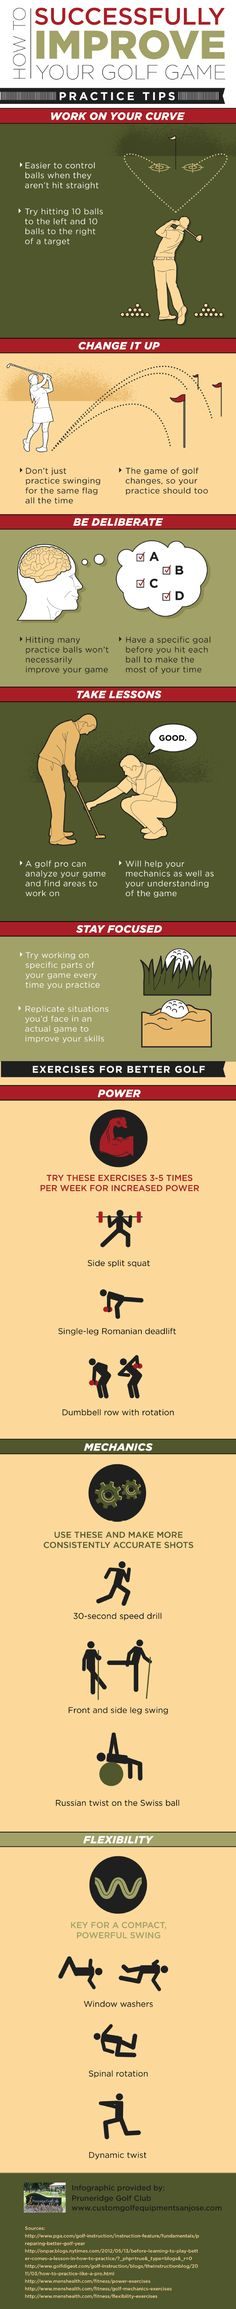 It is easier to control golf balls when they aren't hit straight. That is why it is important to work on your curve! Find more tips for improving your golf game by reading through this infographic from a golf club in San Jose. #LorisGolfShoppe